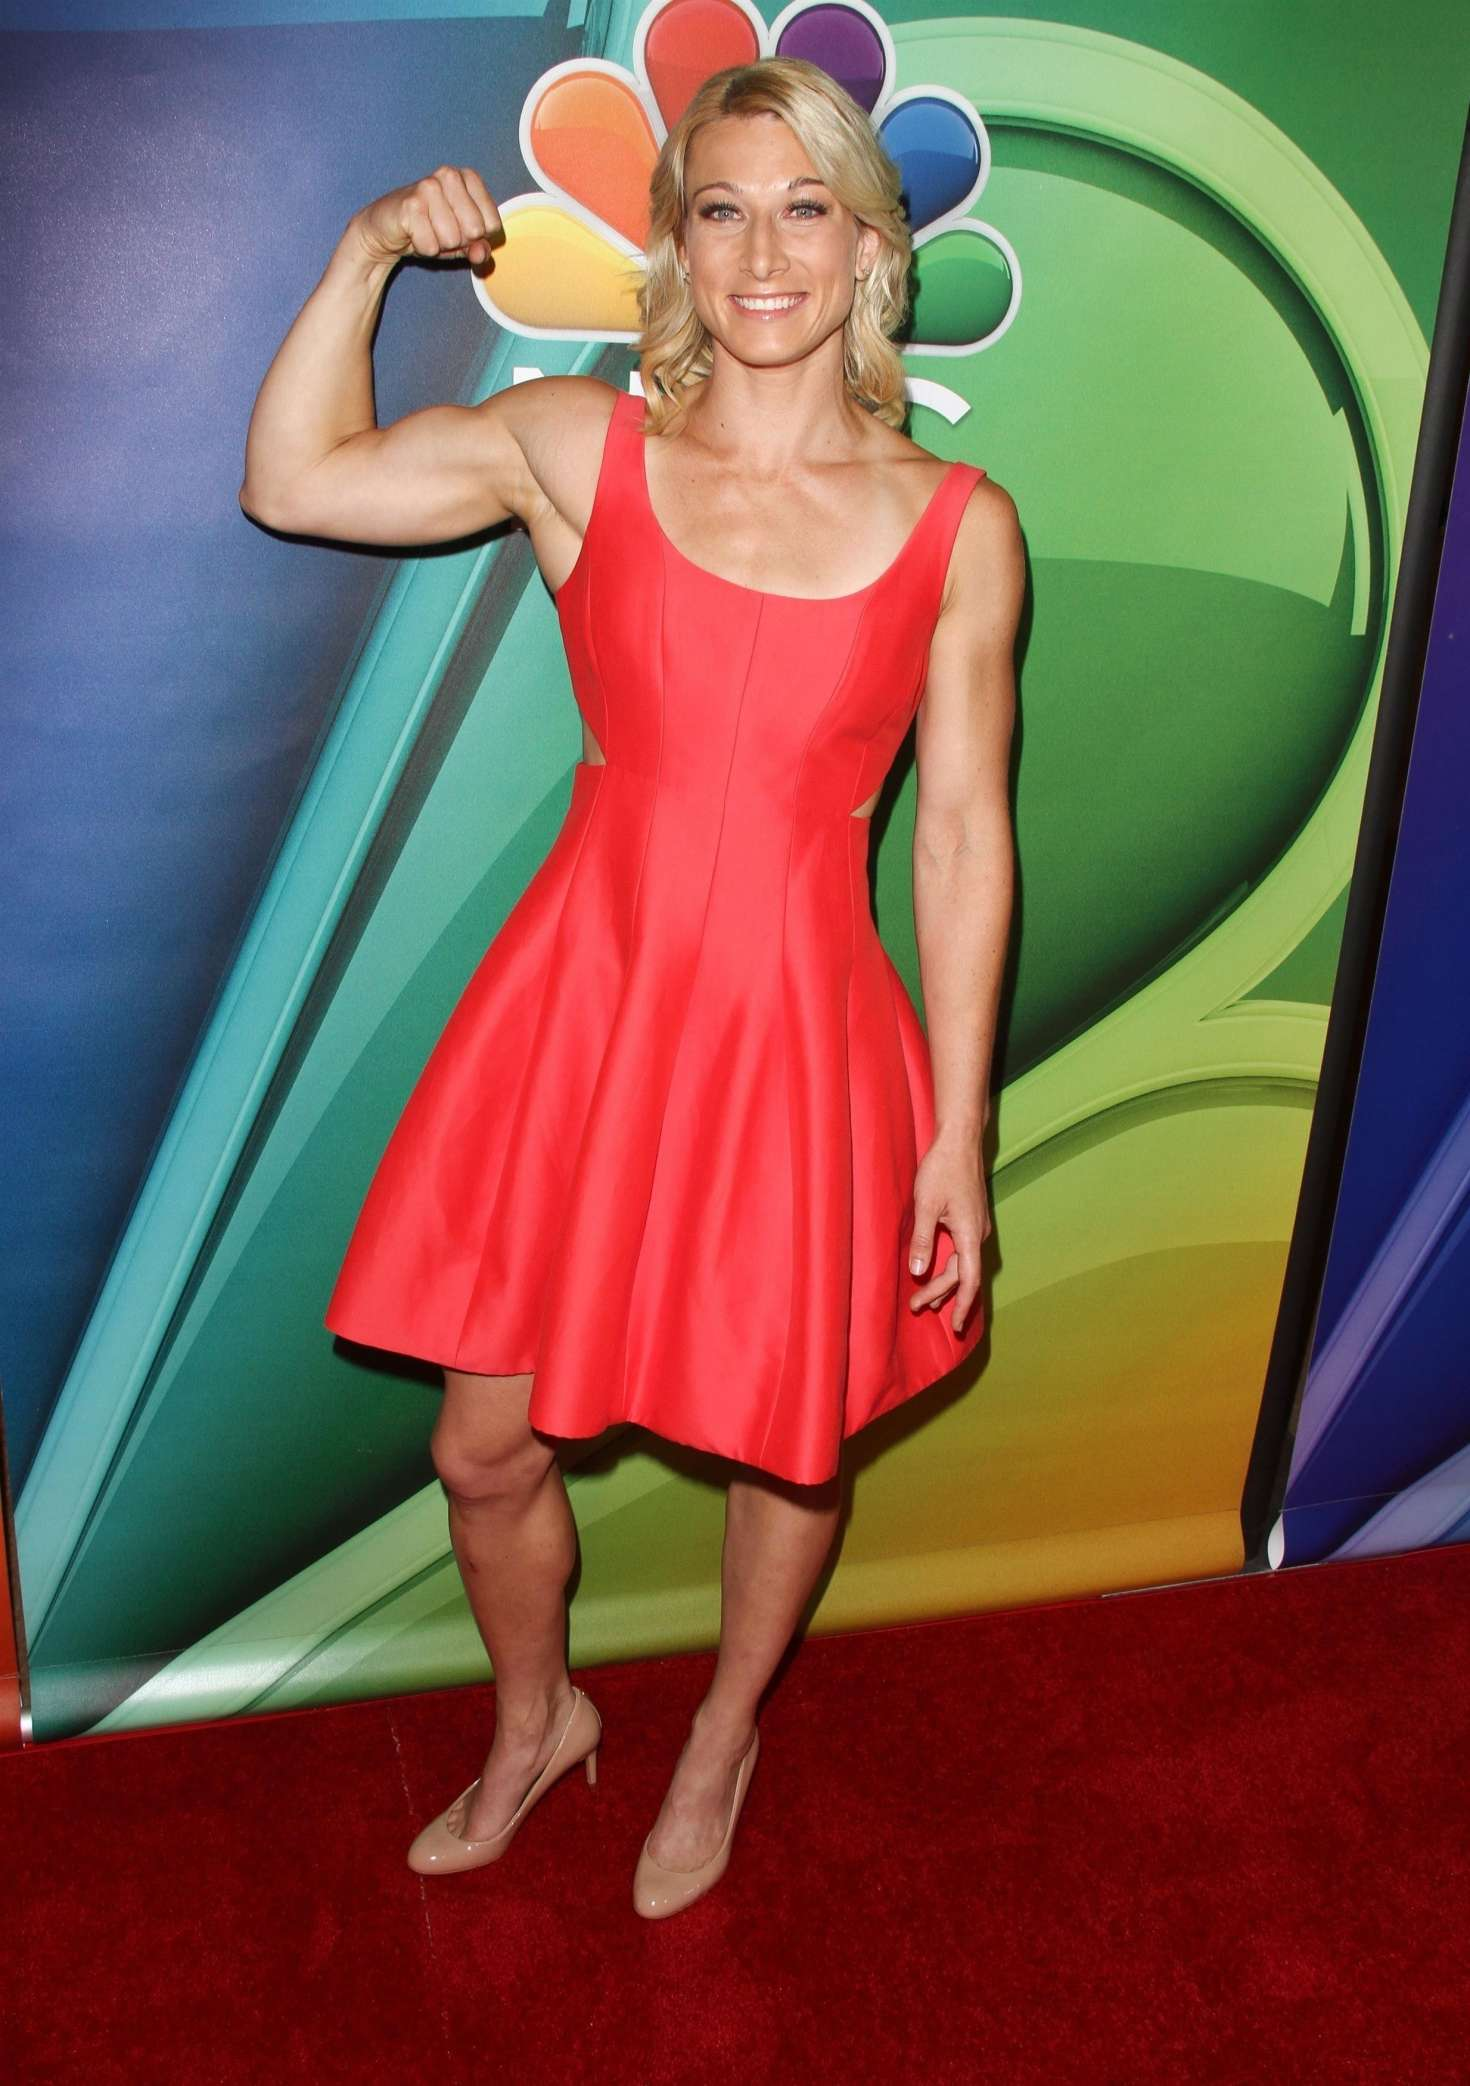 Saturn Girl Wallpapers 35 Hot Pictures Of Jessie Graff Supergirl Stunt Double